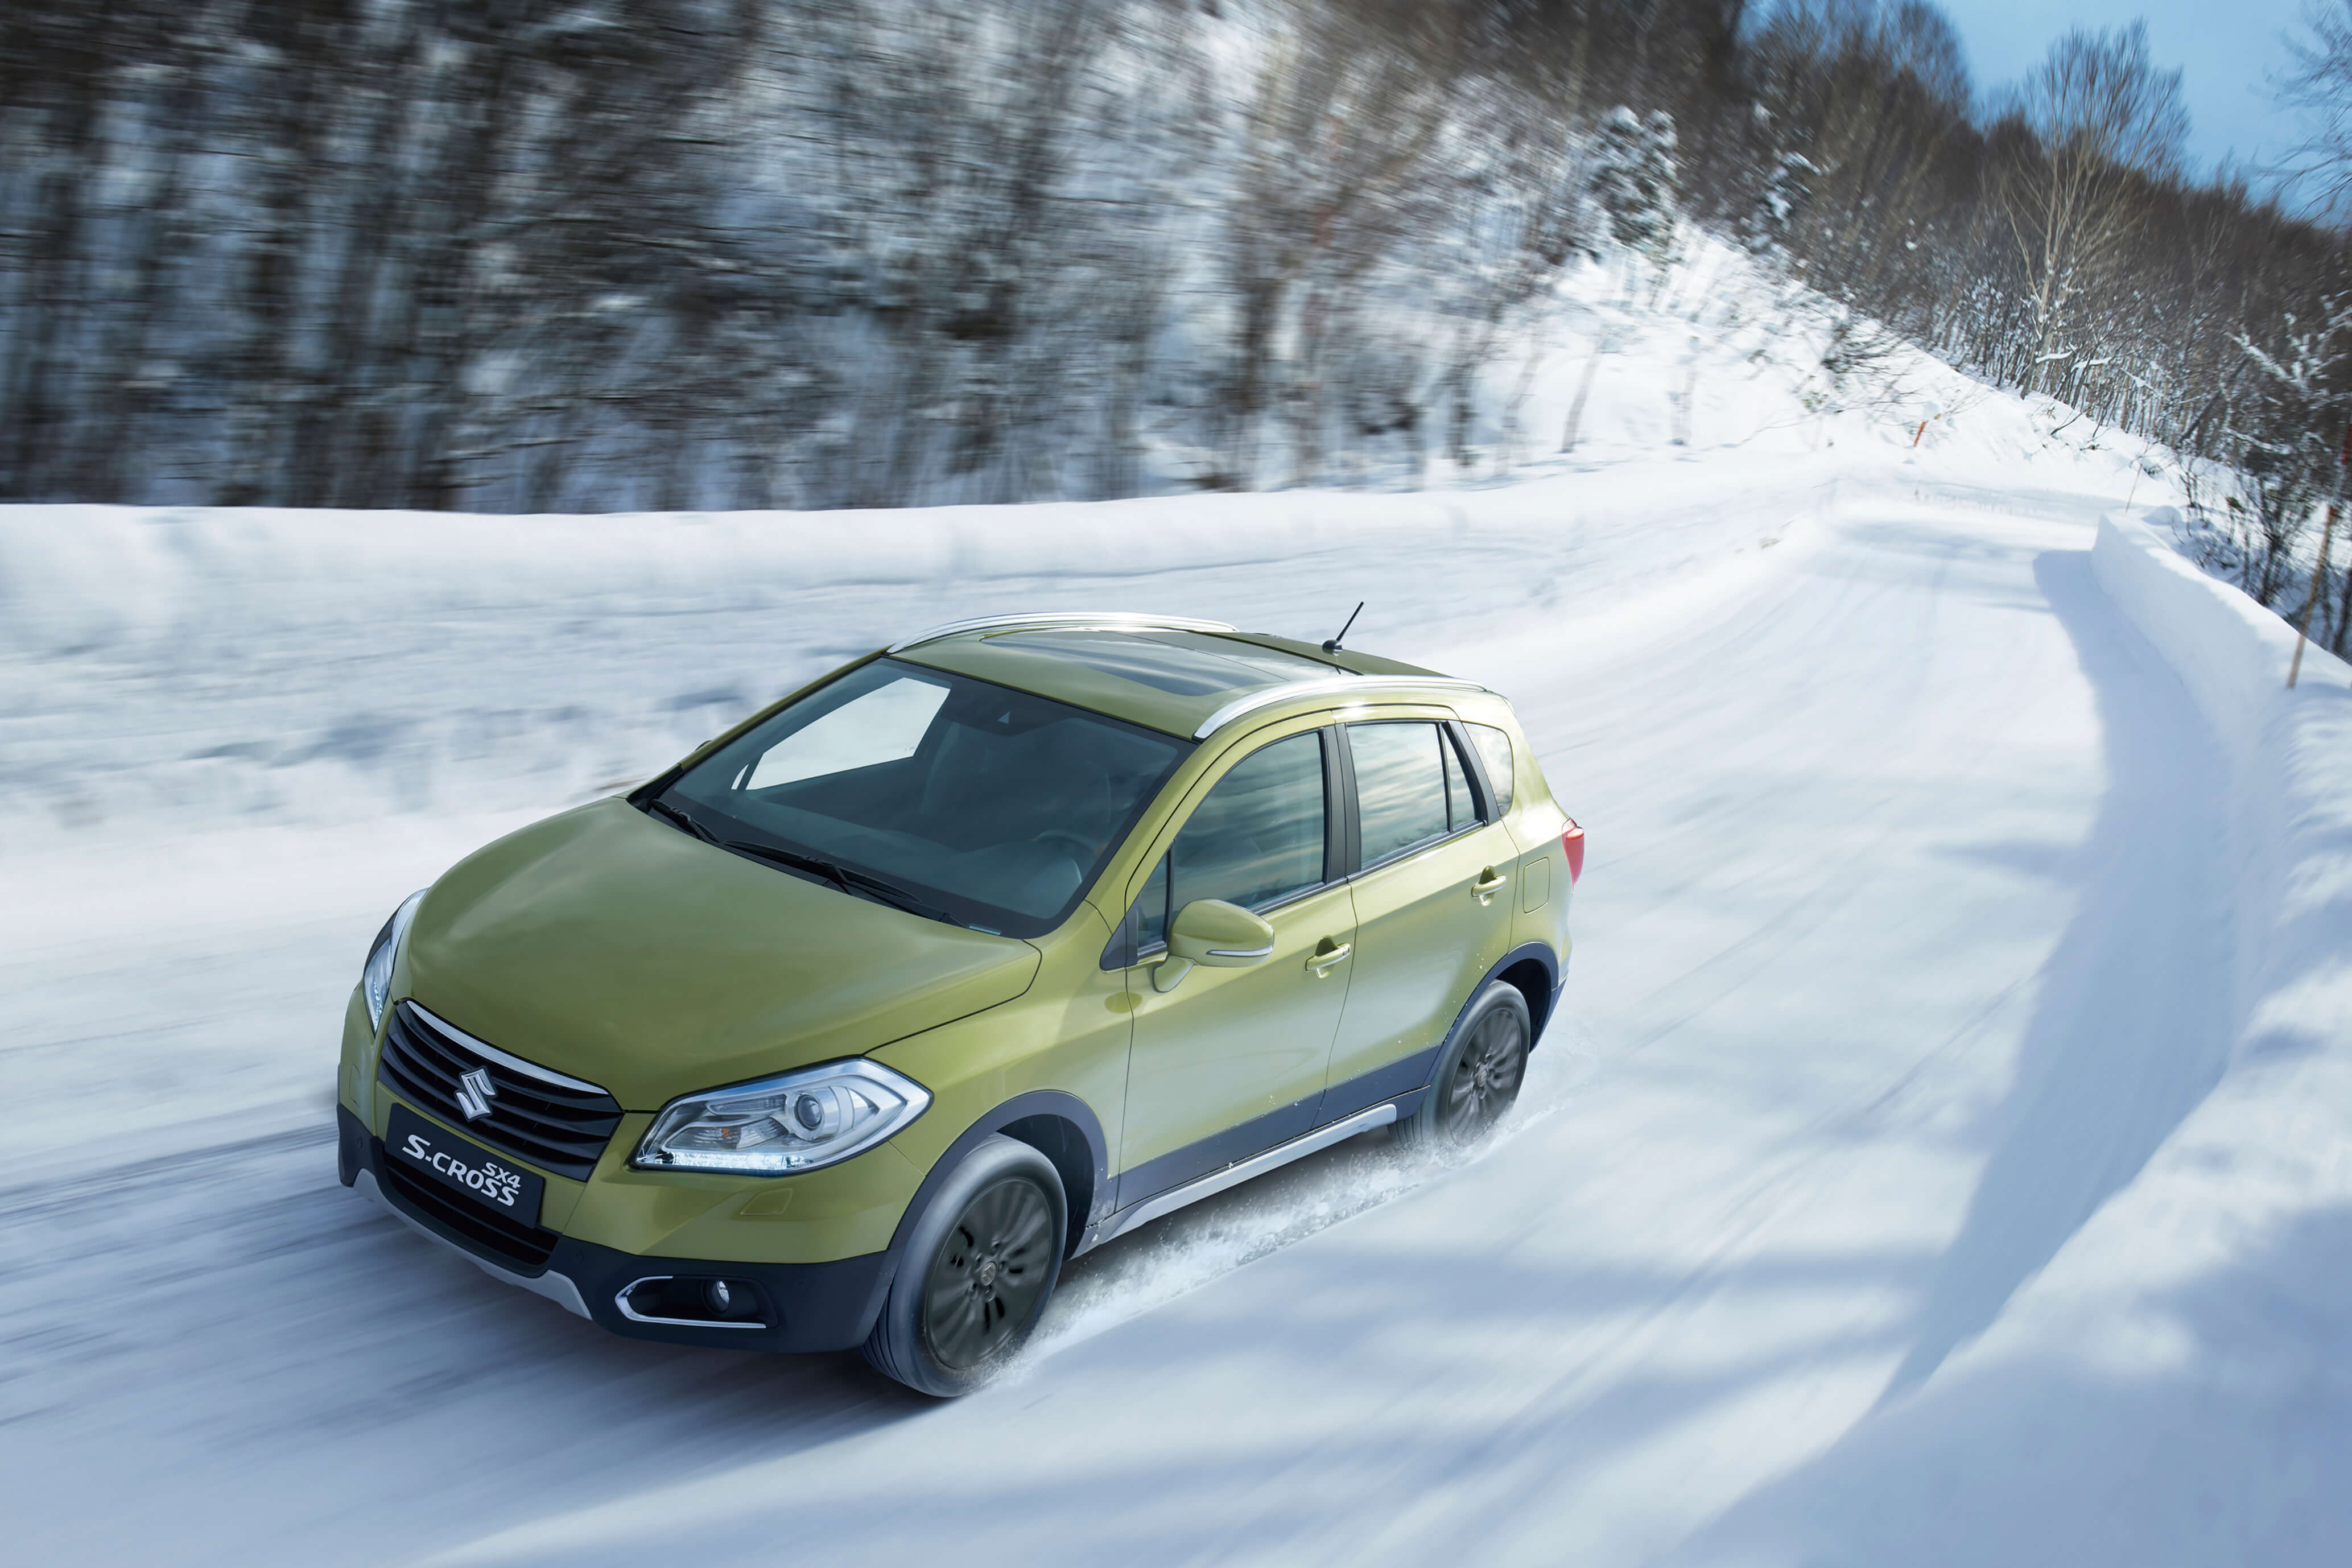 S-cross_vinter